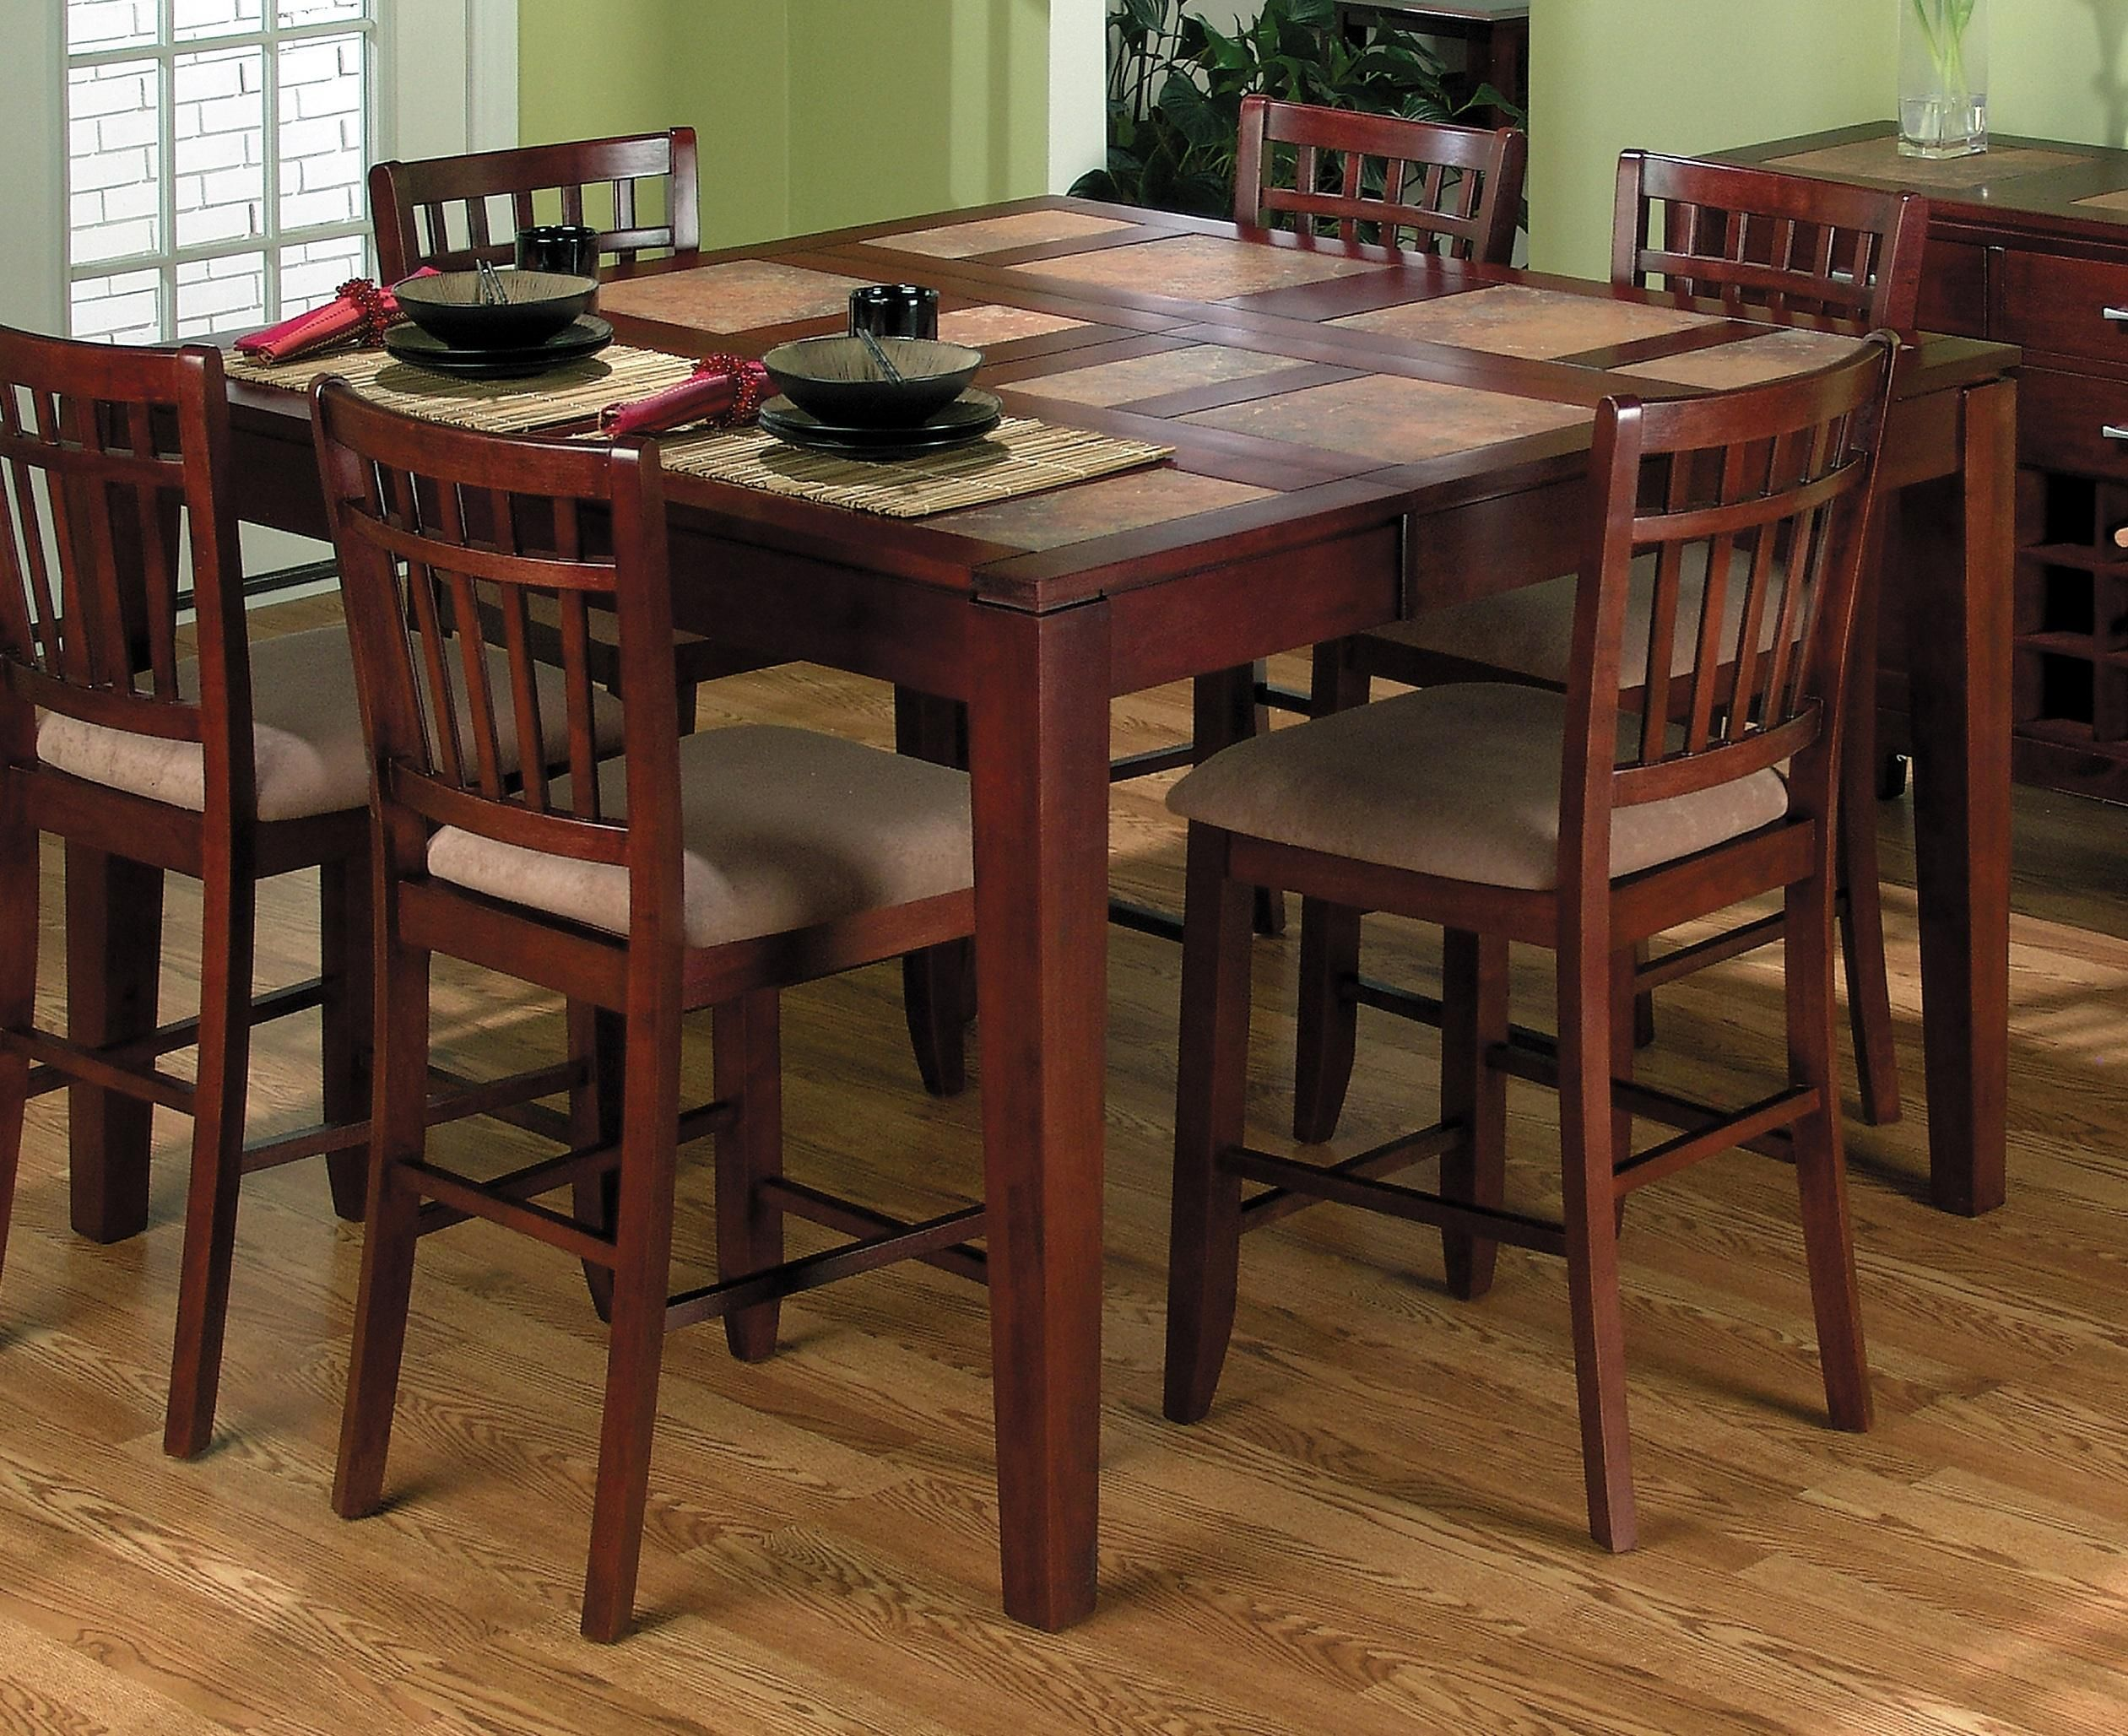 10 Small Dinette Set Design Dining Room Counter Height